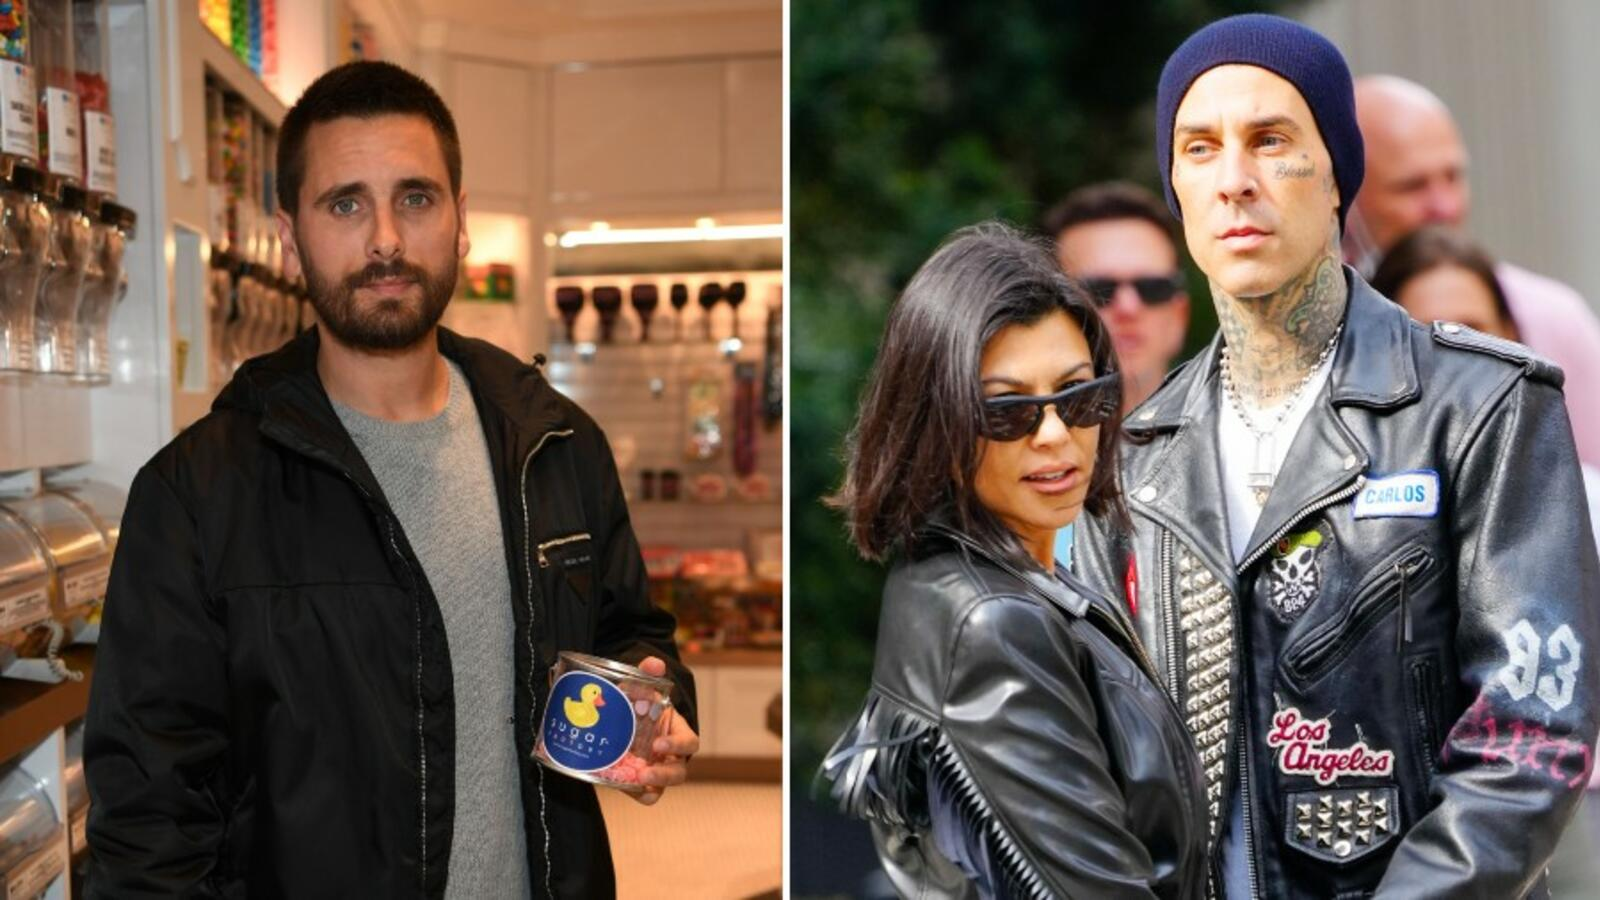 Scott Disick 'Distancing Himself' From Family After Travis Barker Proposal